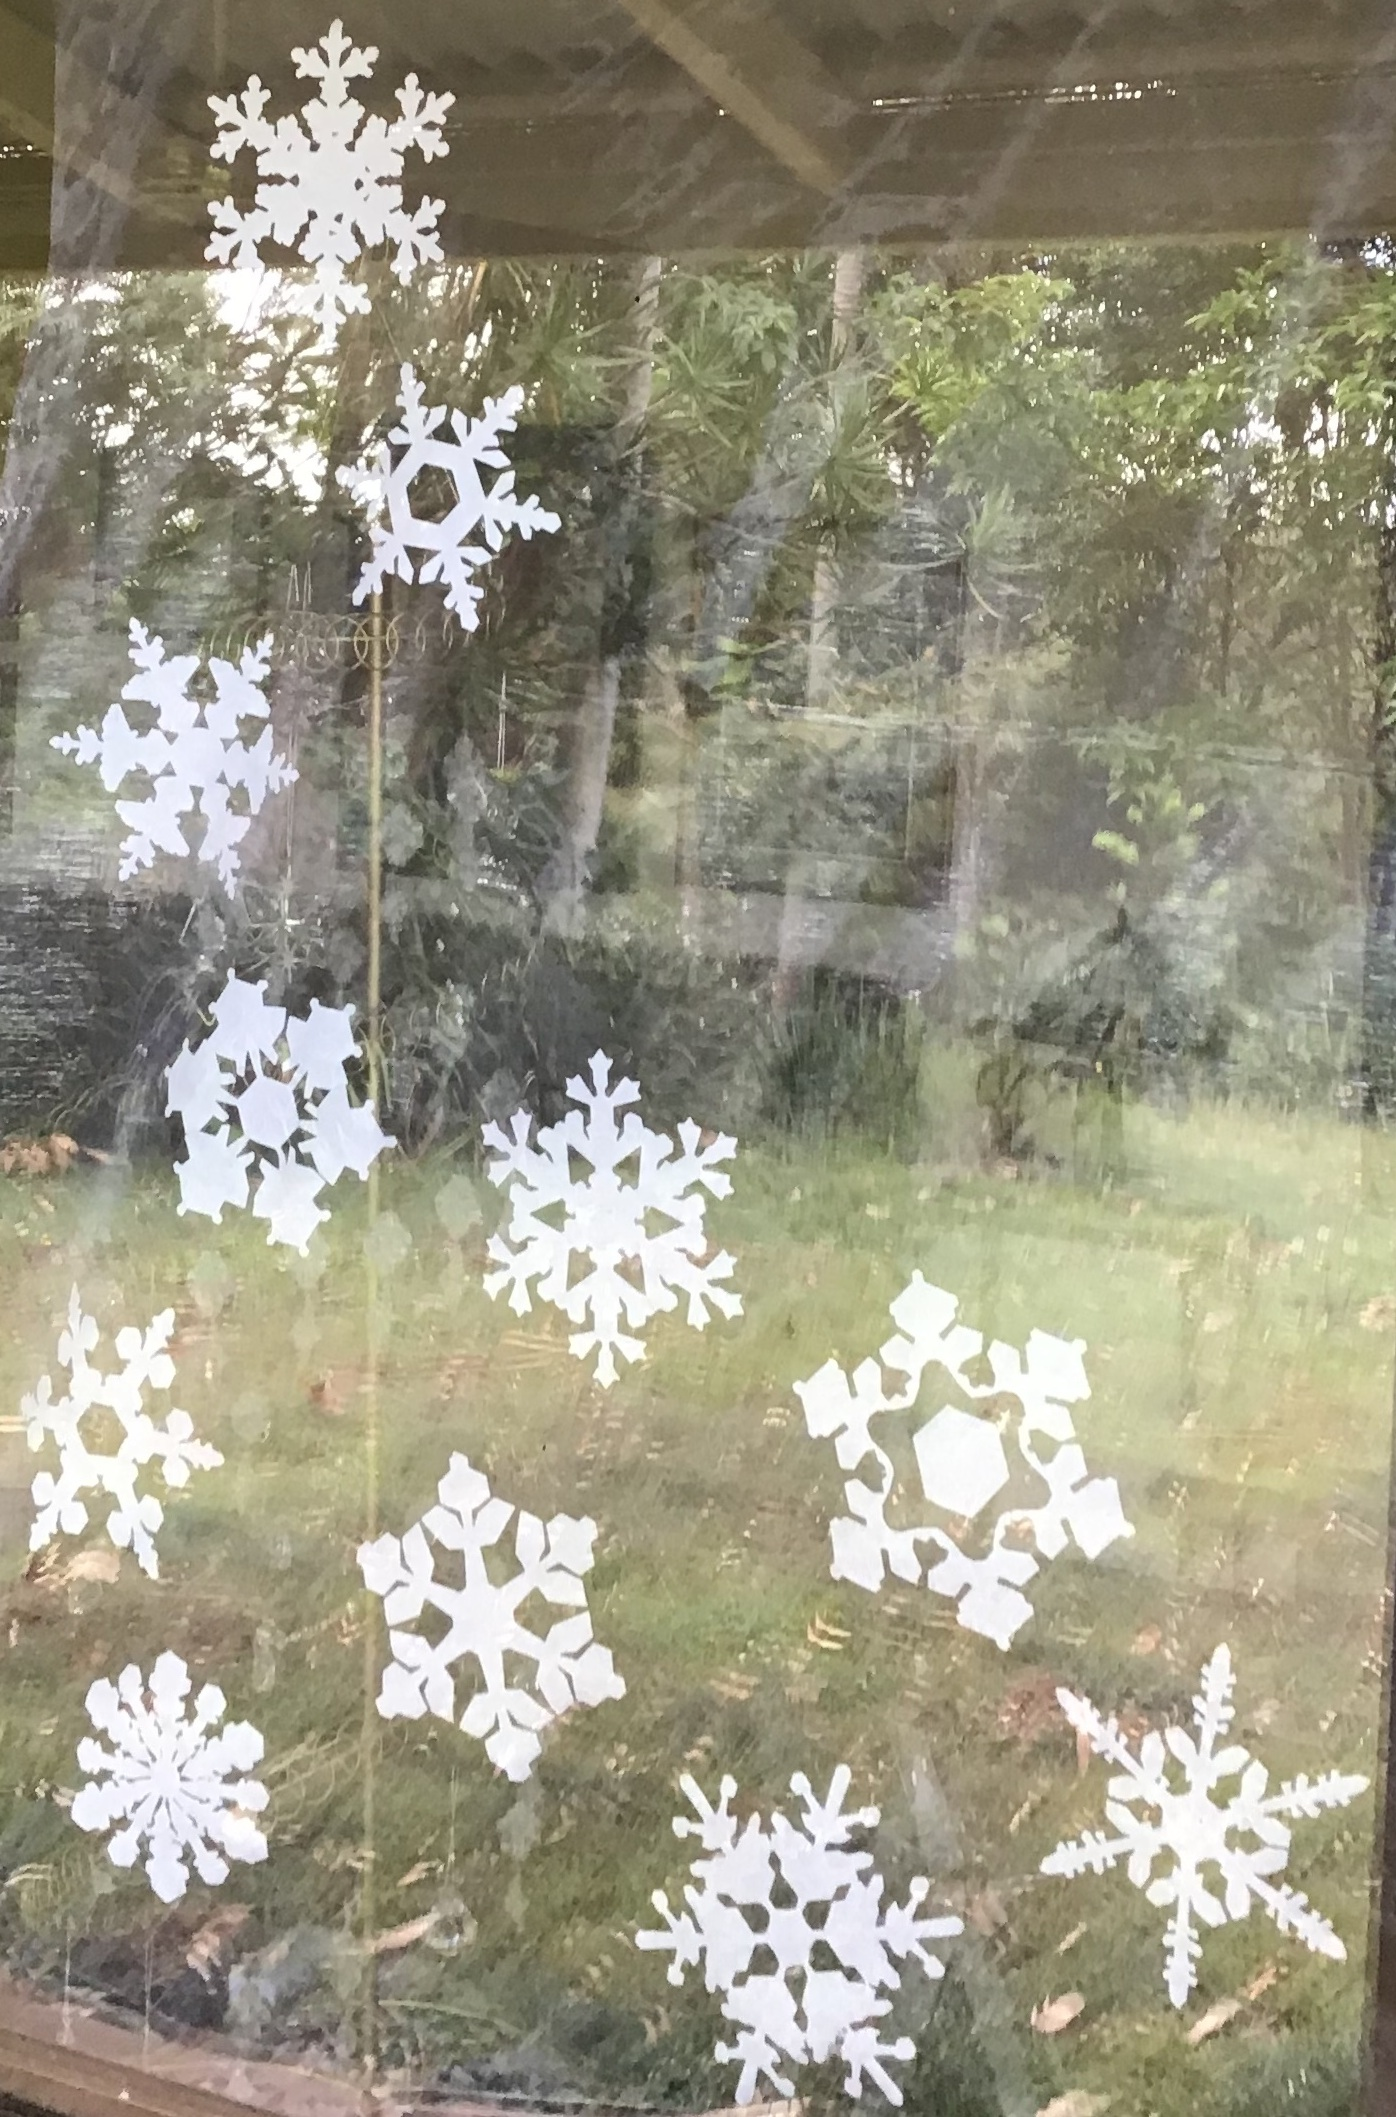 snowflakes when its 37°C (99°F)